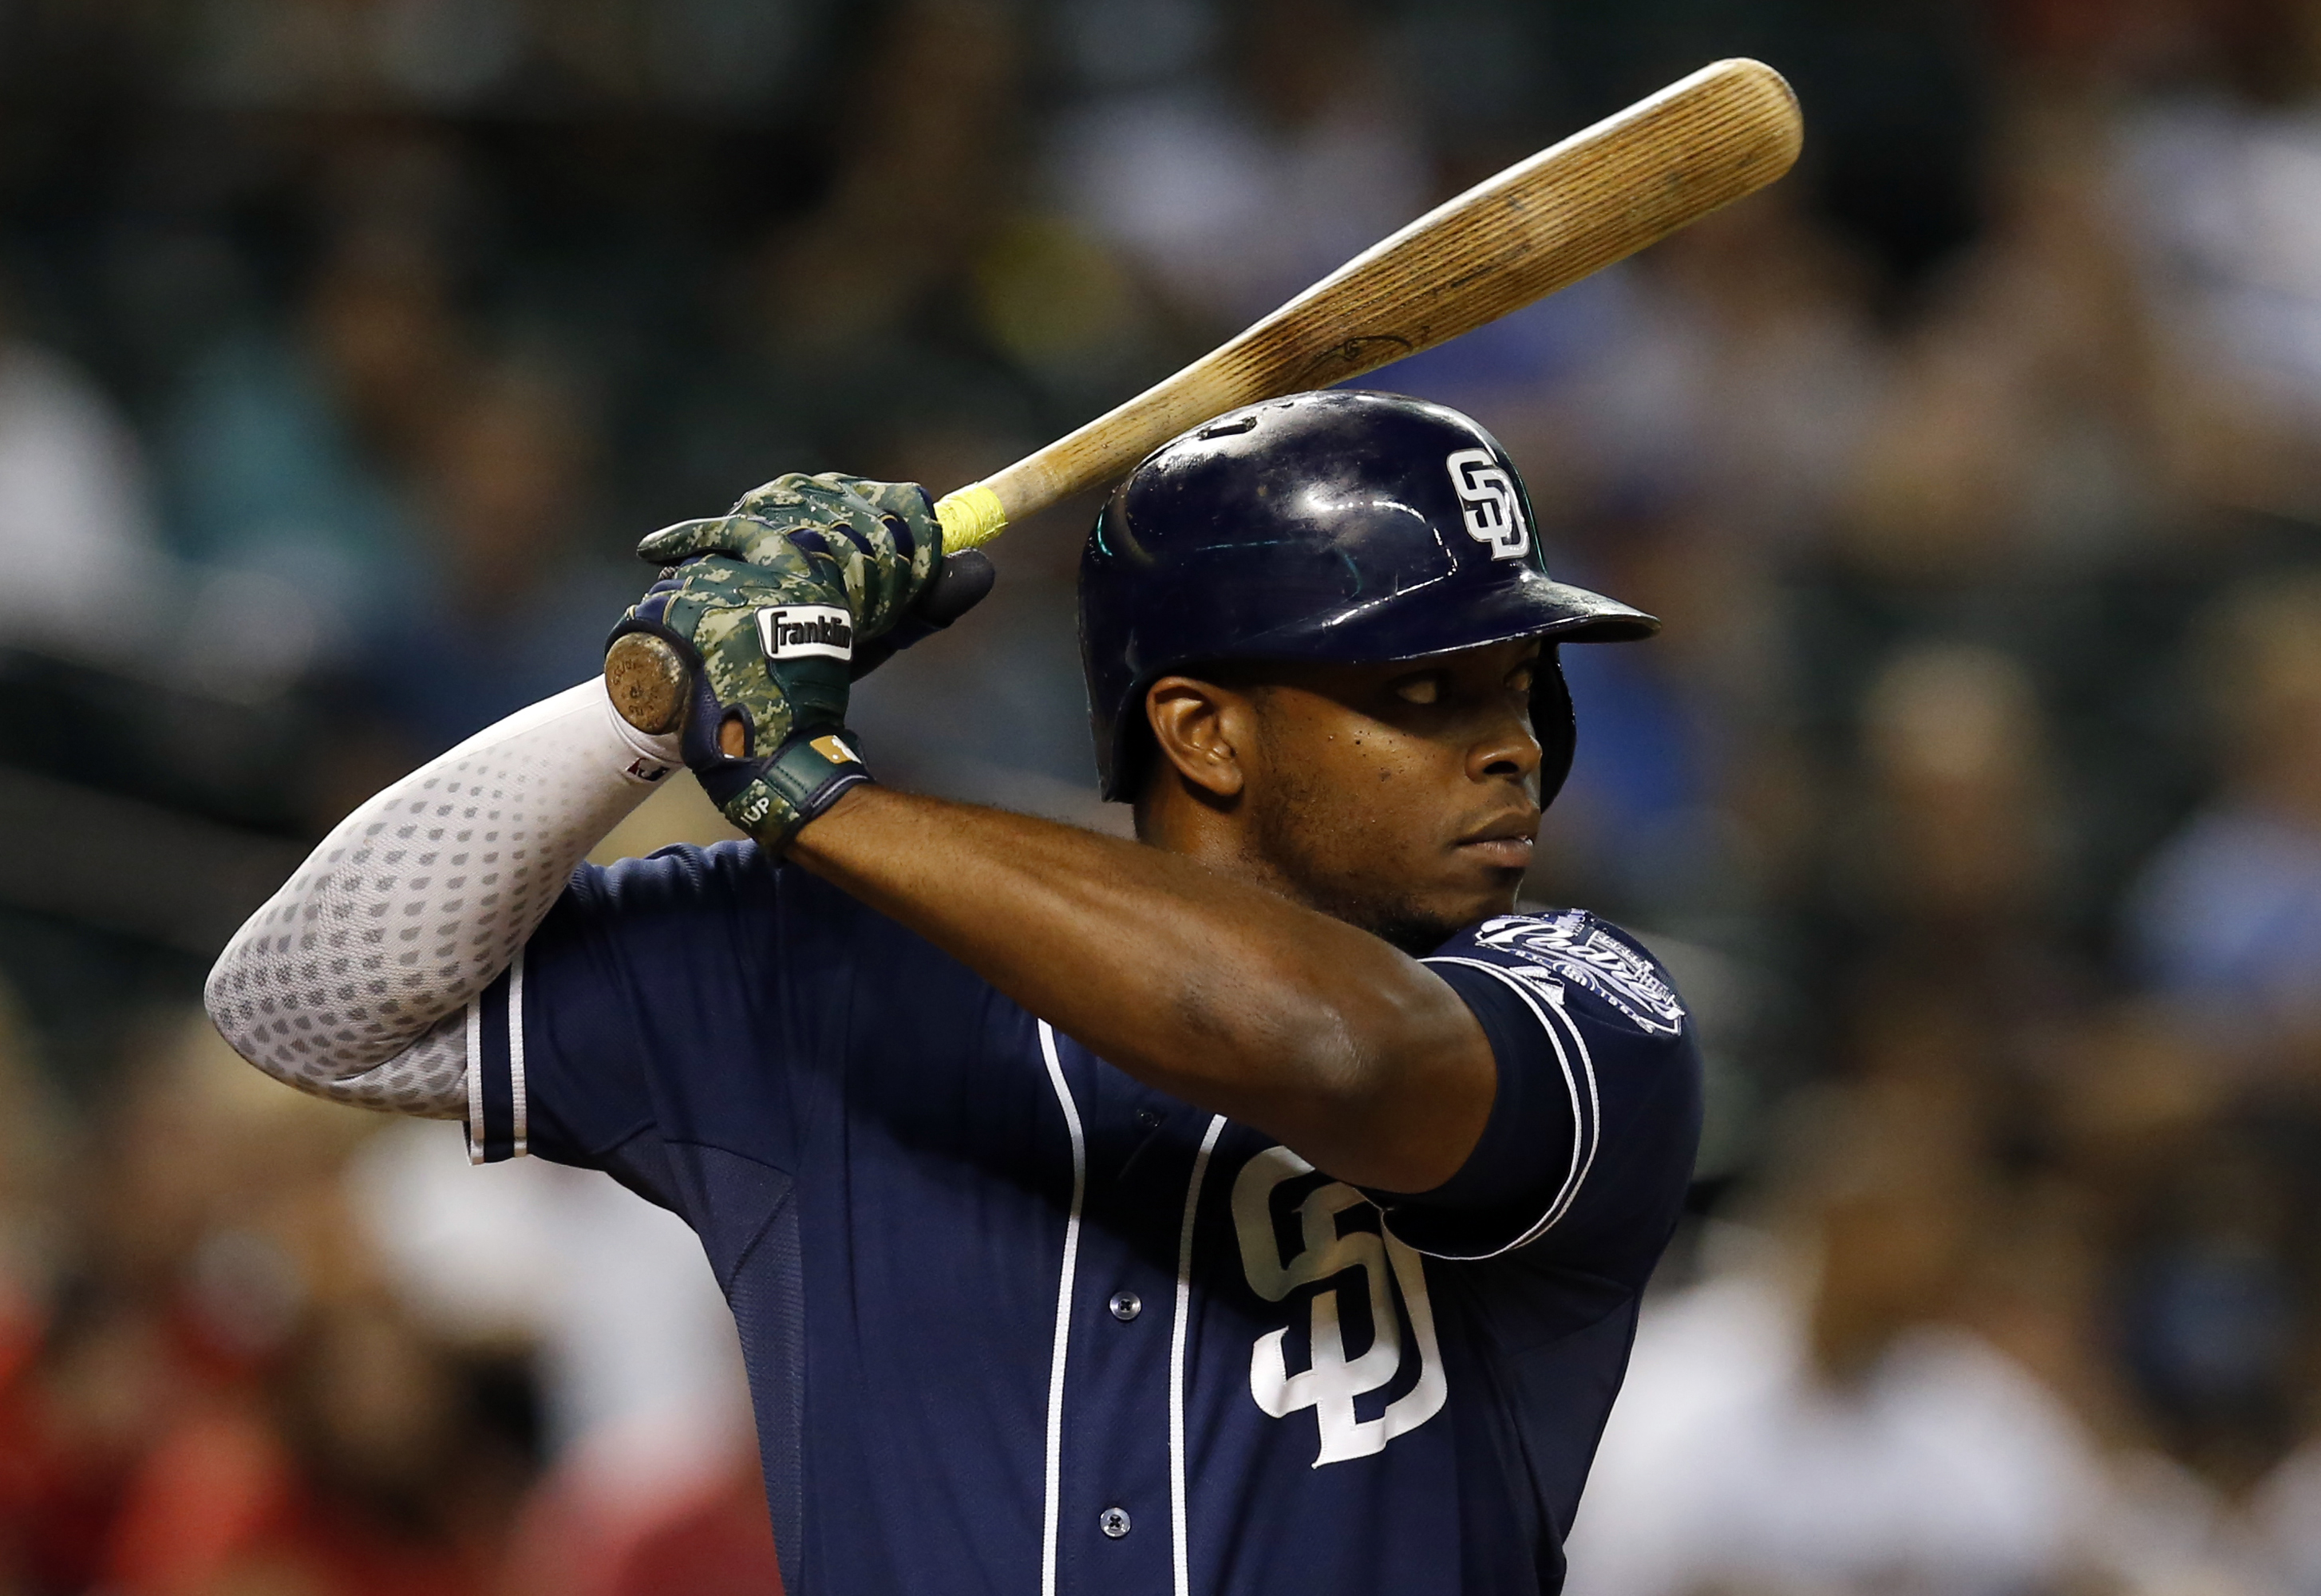 FILE- In this Sept. 15, 2015, file photo, San Diego Padres left fielder Justin Upton looks to hit in the sixth inning of a baseball game against the Arizona Diamondbacks in Phoenix. Upton is among the top players to join the AL Central. (AP Photo/Rick Scu